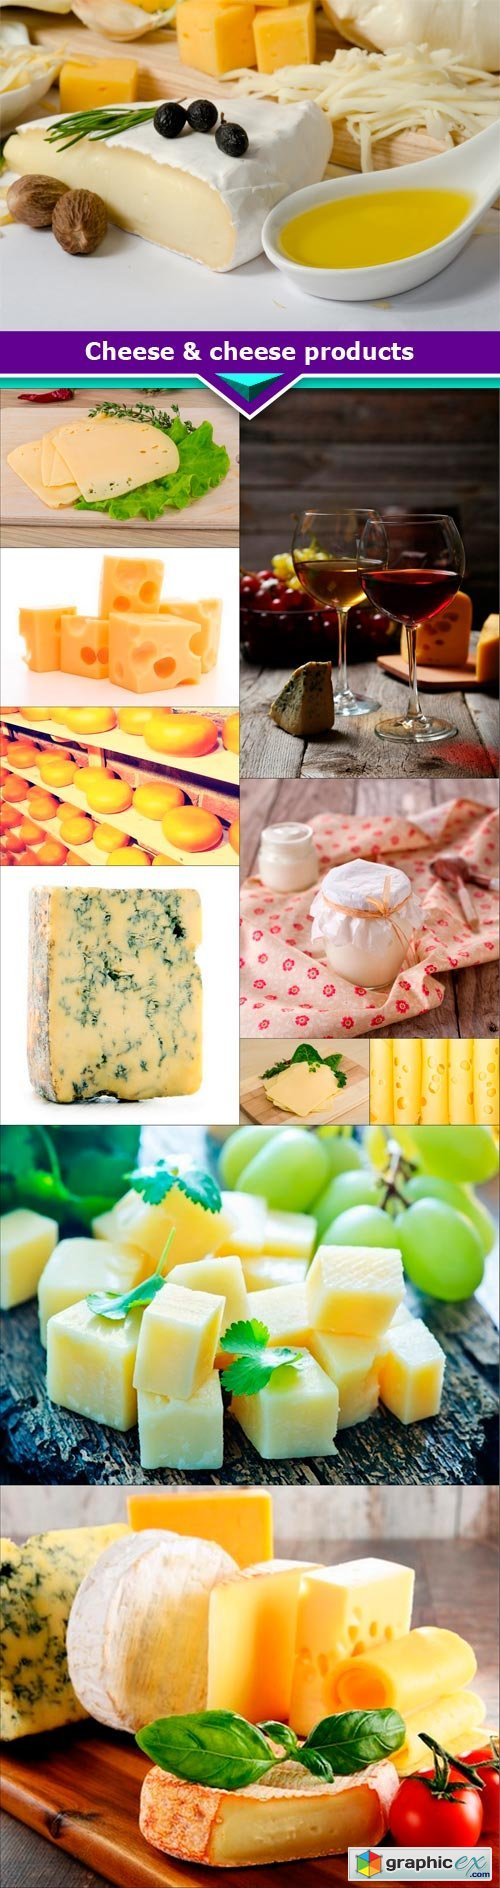 Cheese & cheese products 11x JPEG